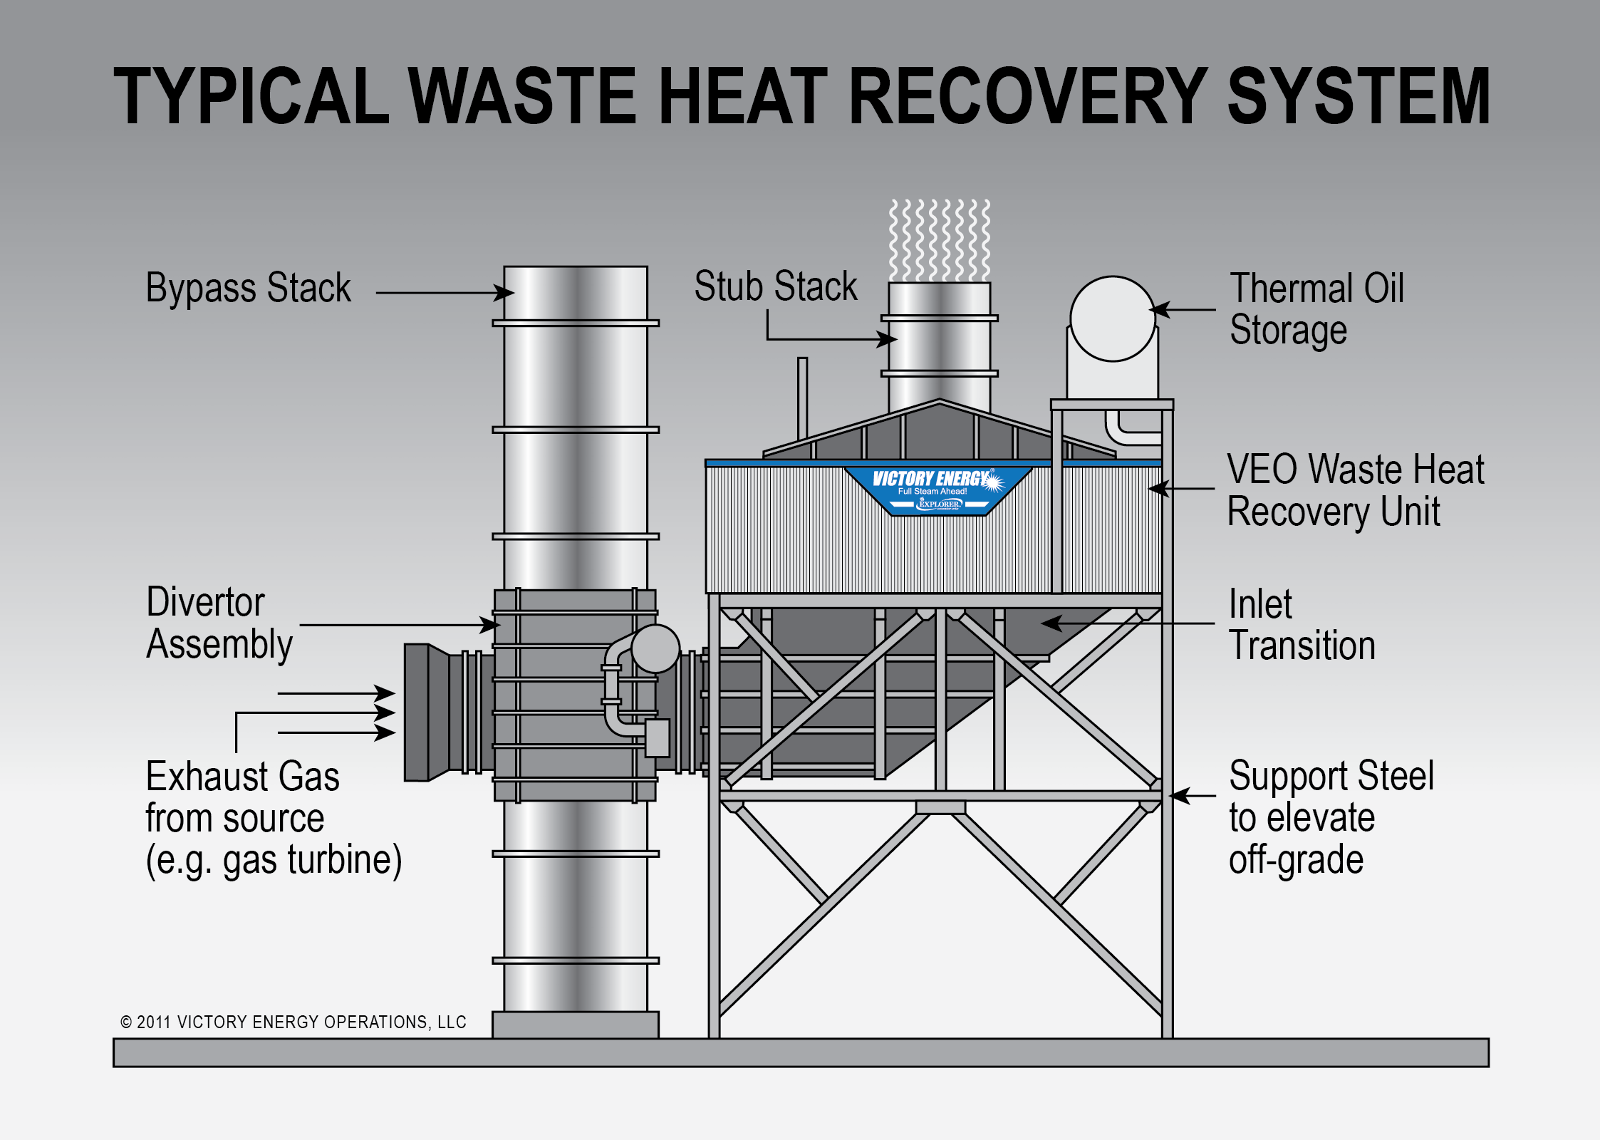 WASTE HEAT RECOVERY UNIT1.png (1600×1140)